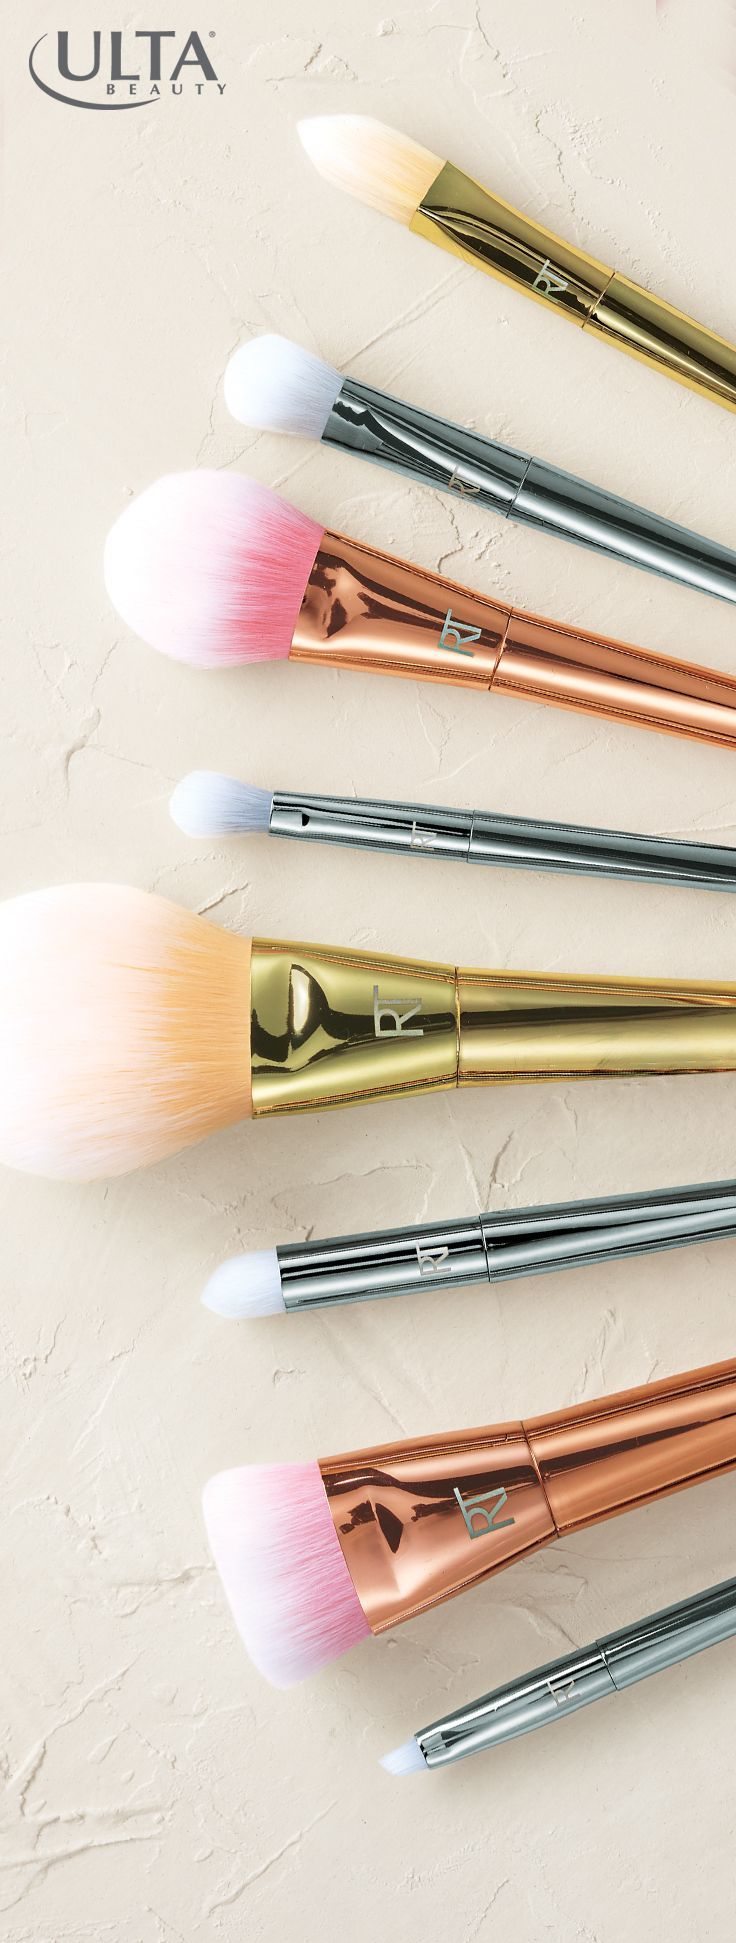 How pretty are these metallic makeup brushes? Putting on makeup gets glam with these Real Techniques brushes from Ulta Beauty.